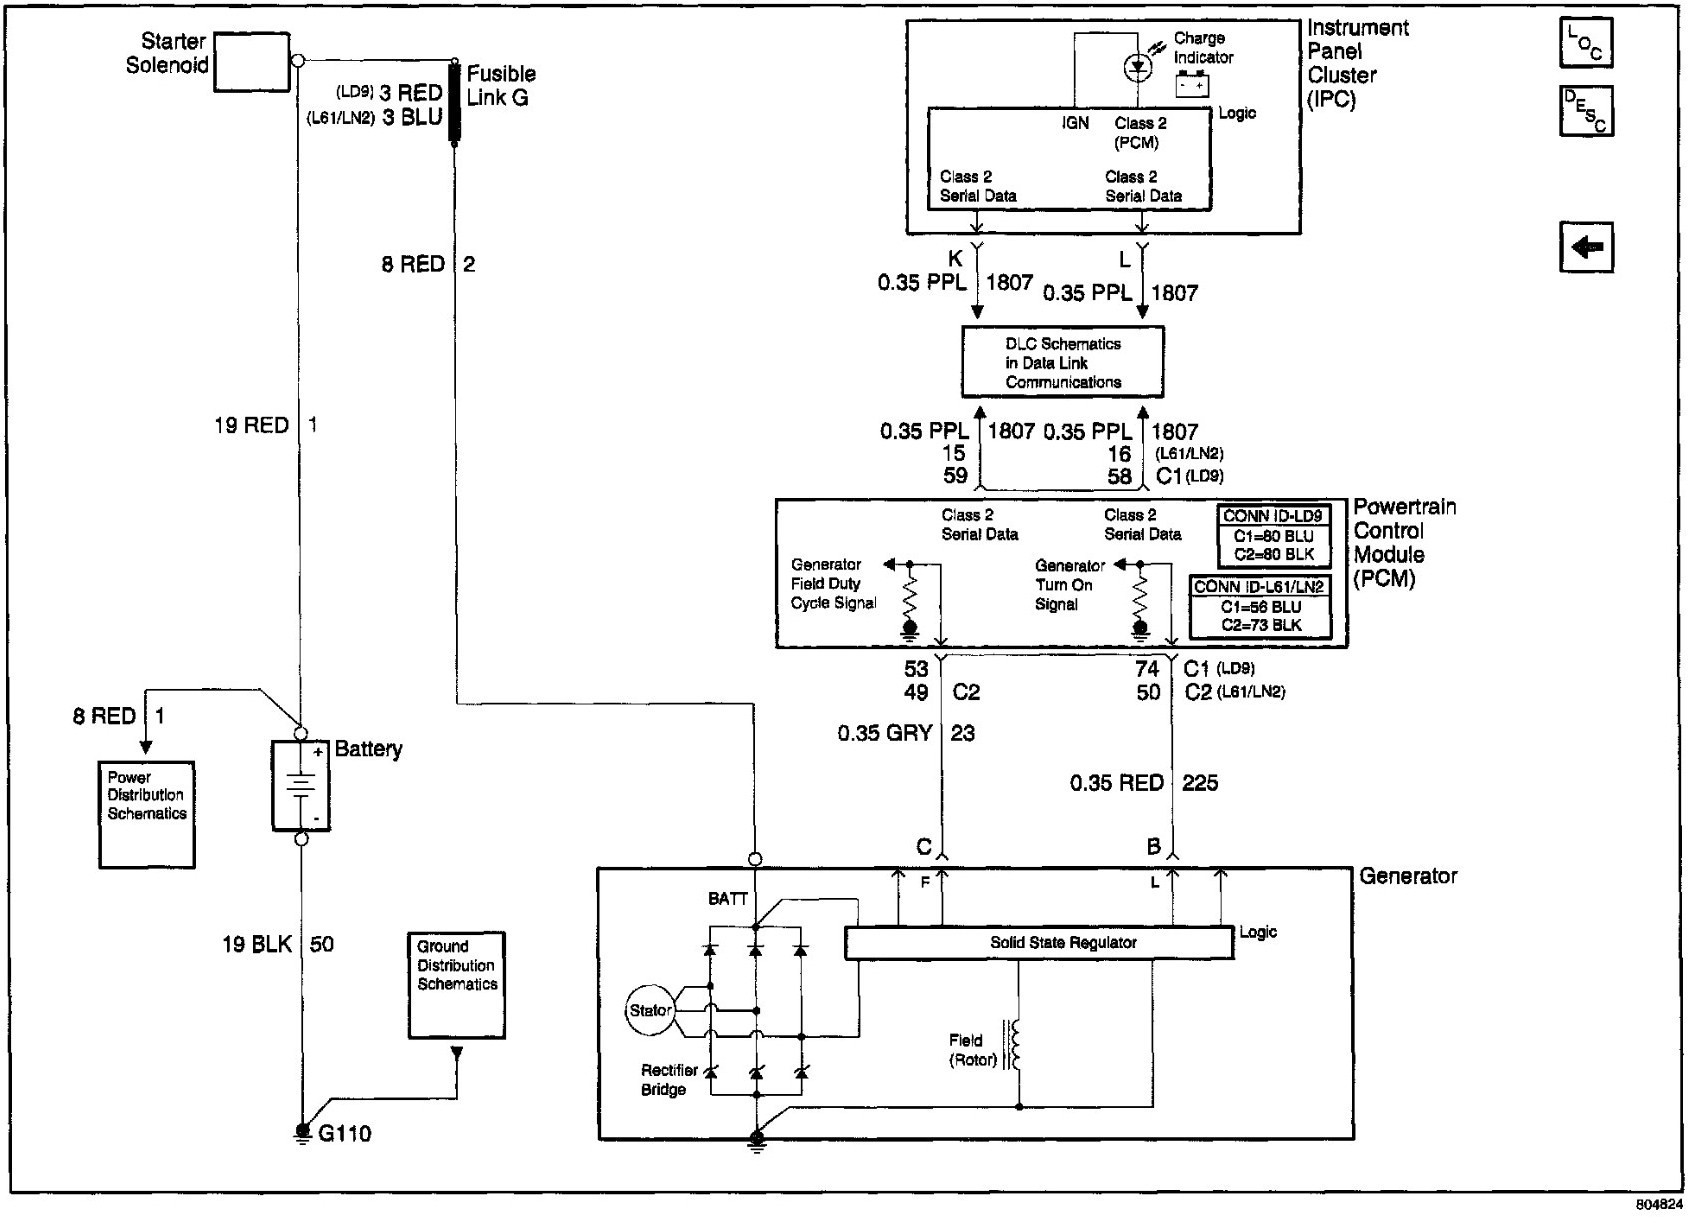 gm alternator wiring schematic Download-Saturn Alternator Wiring Diagram 2019 Saturn Alternator Wiring Diagram New Gm 2 Wire Alternator Wiring 9-k